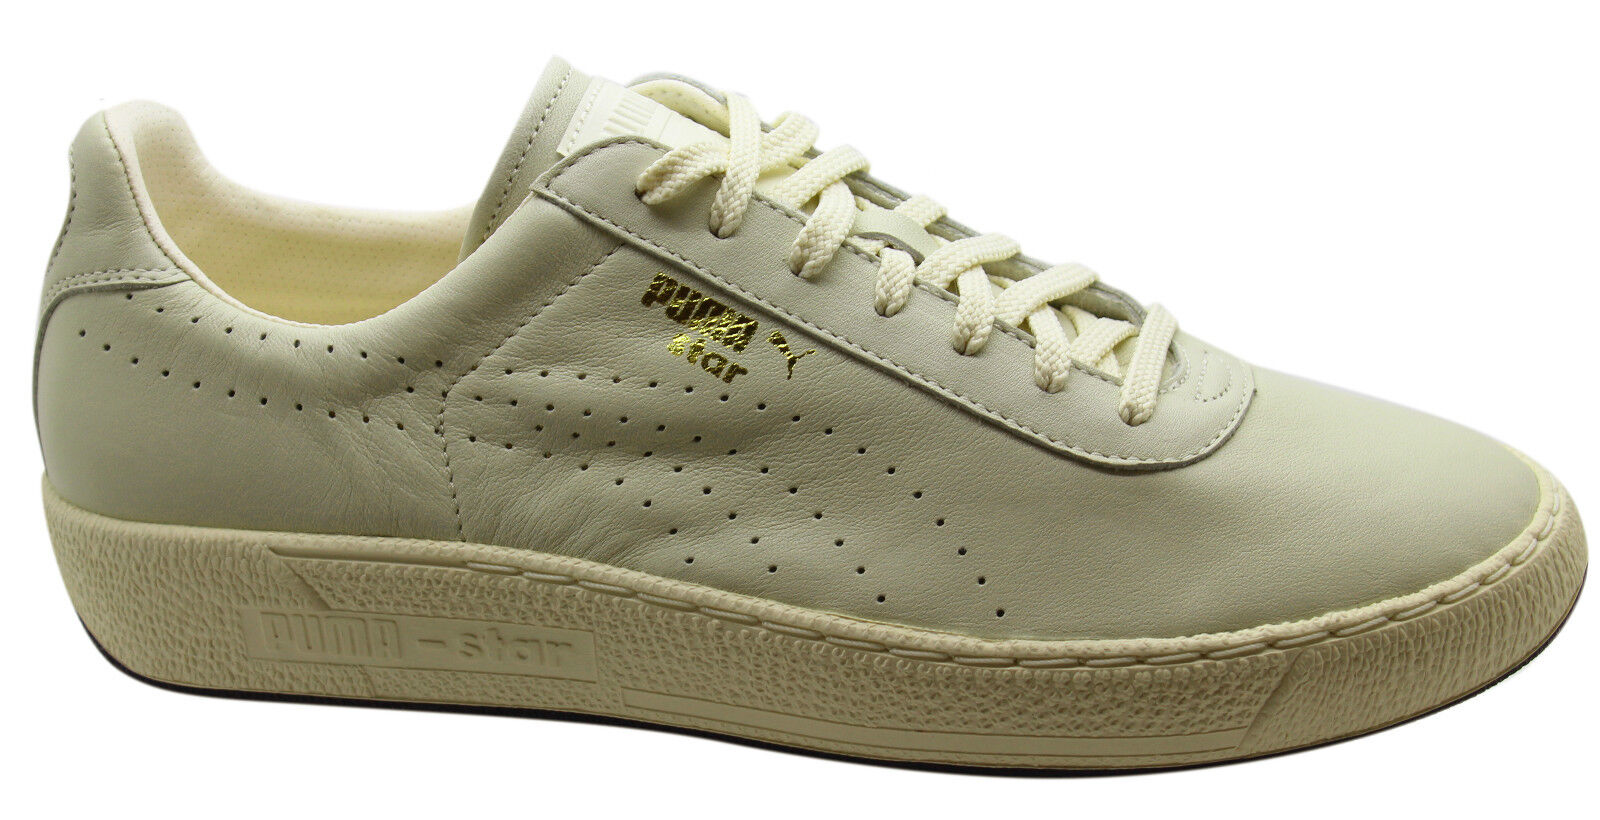 Puma Star Mens Trainers Low Shoes Off White Leather Lace Up 357763 02 U19